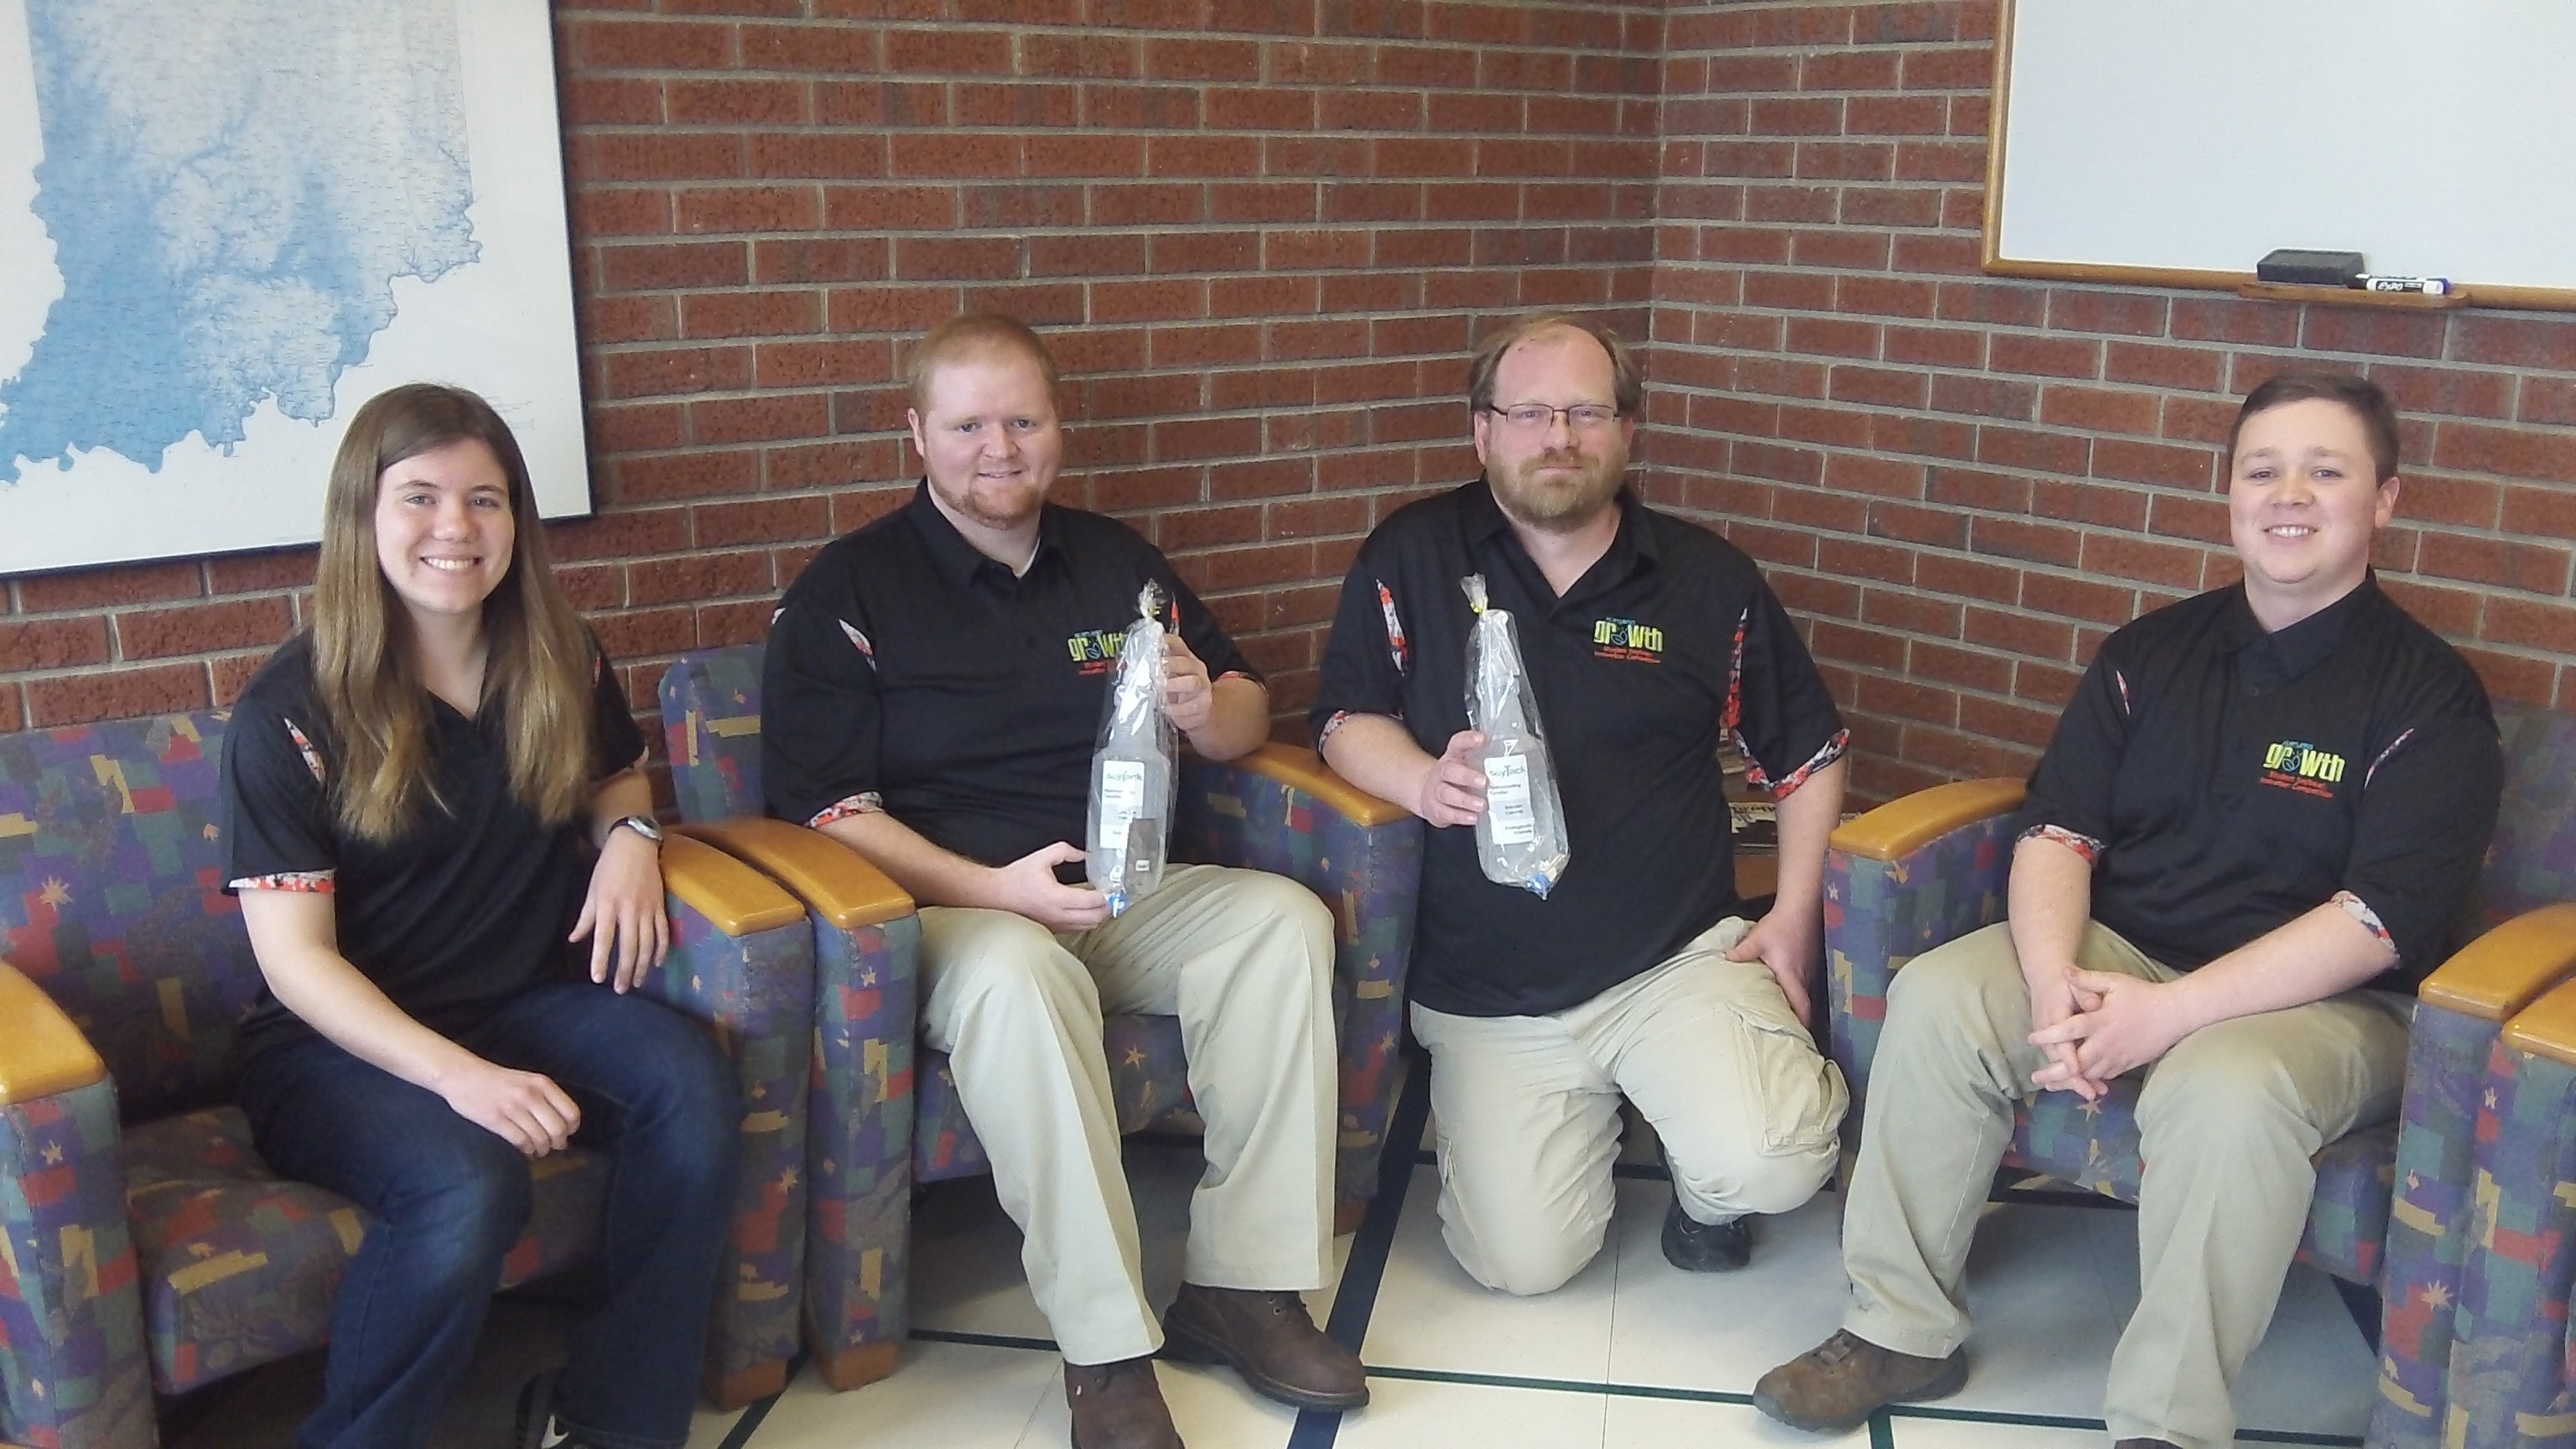 Purdue student team develops hydroseeding adhesive to win Student Soybean Innovation Competition